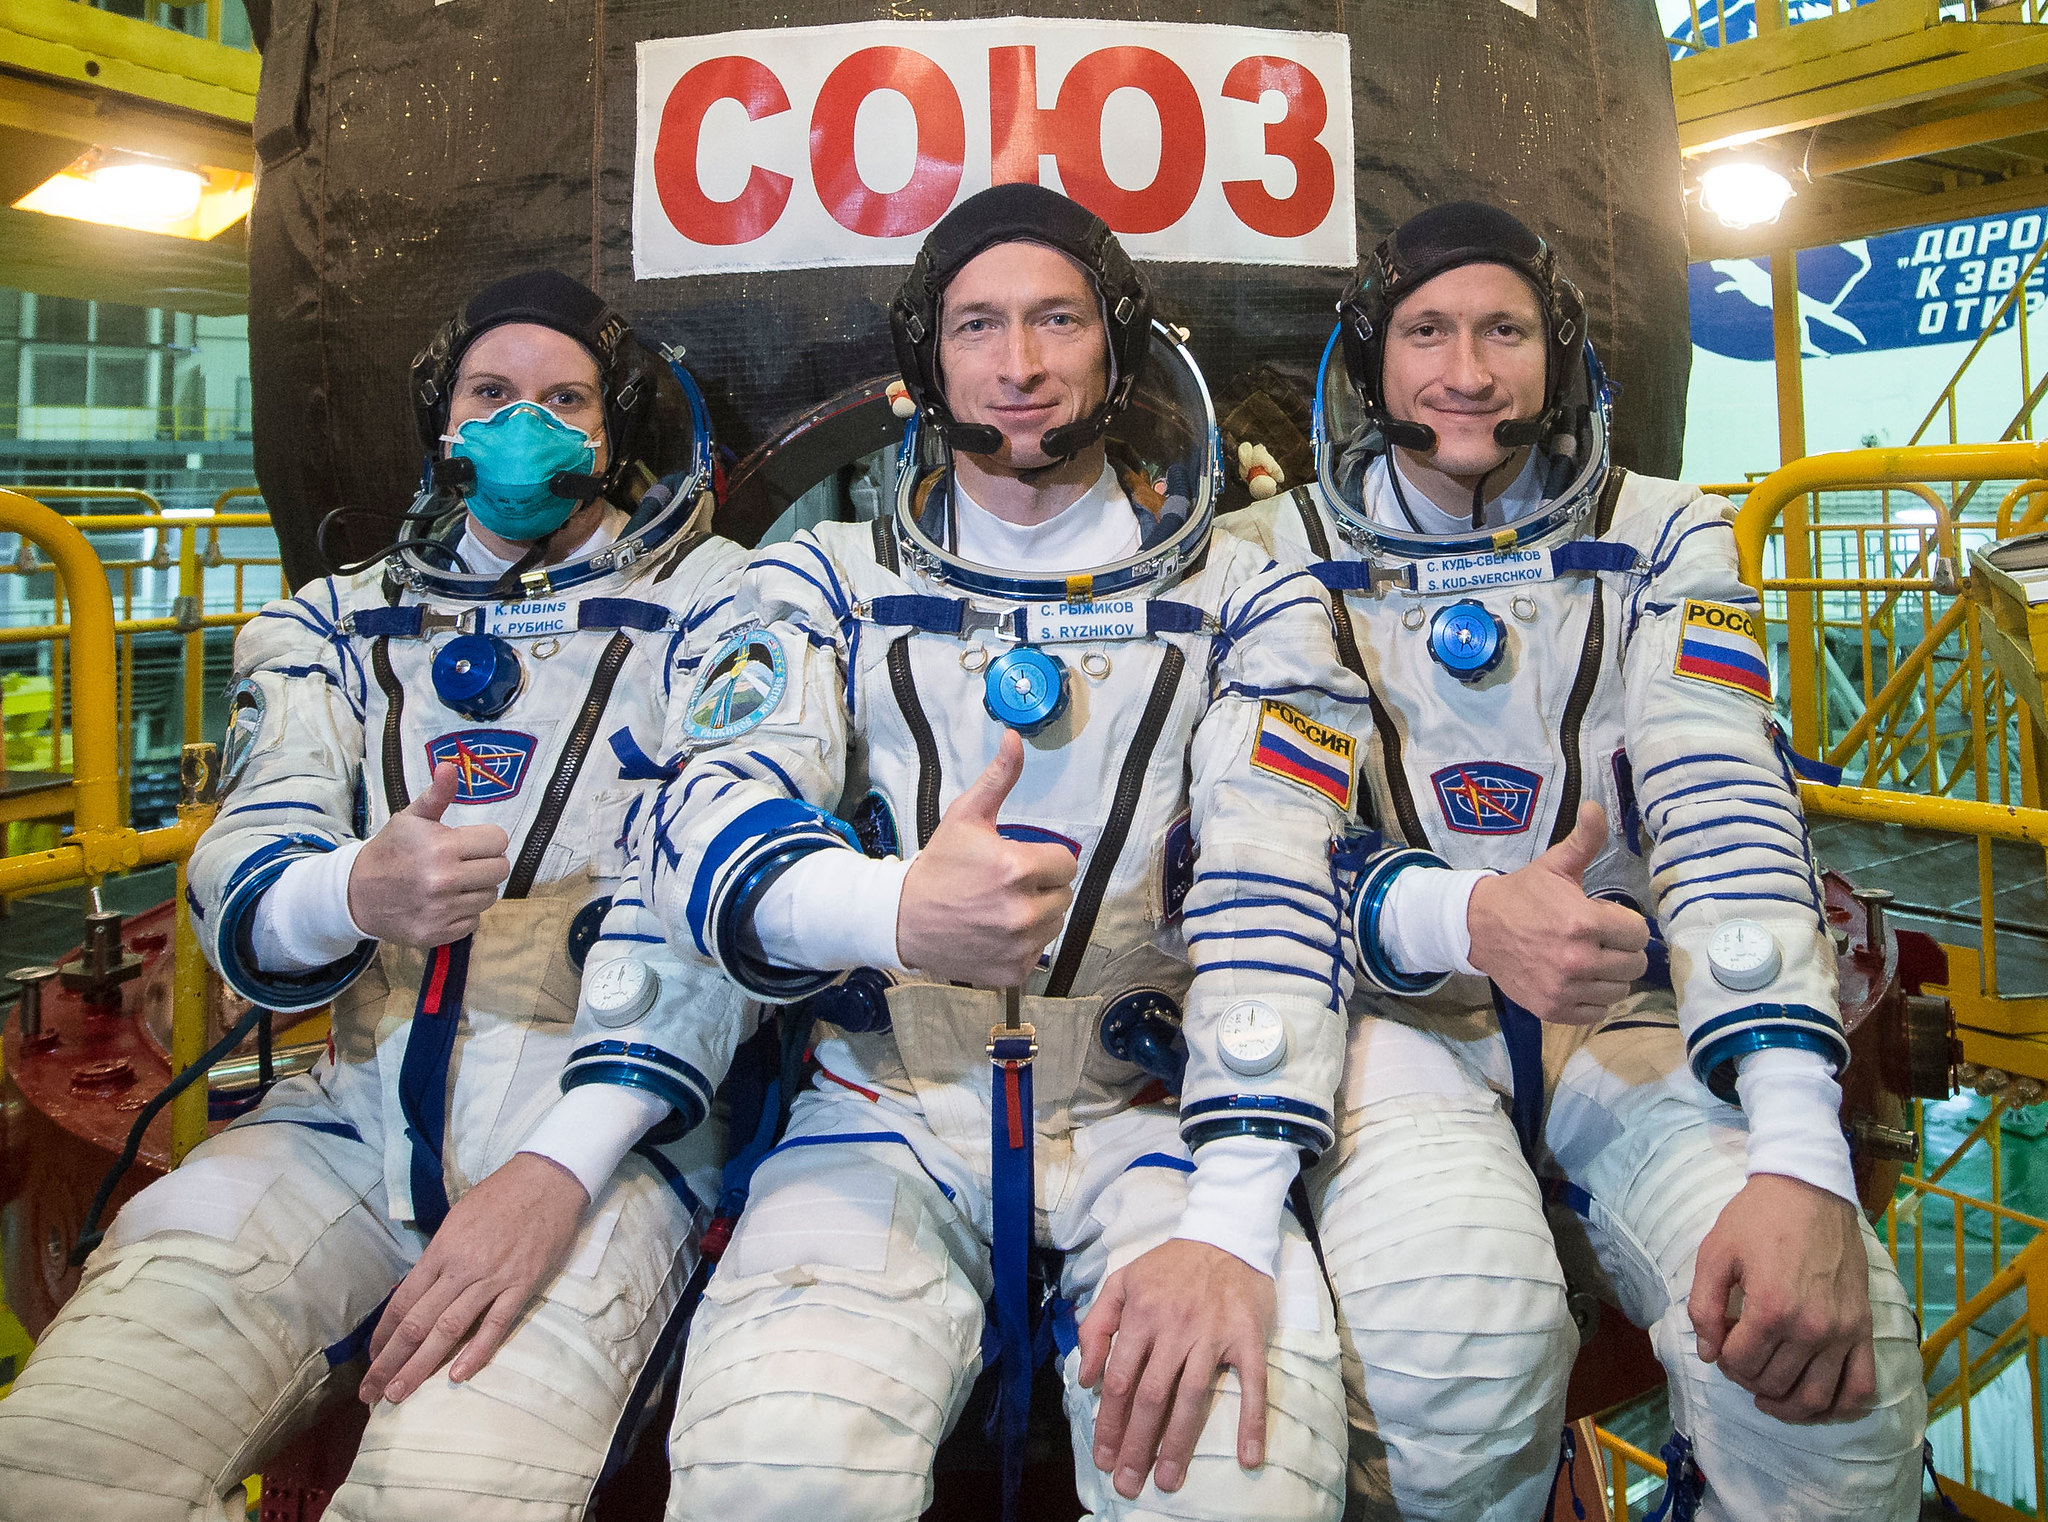 Expedition 64 crew members (from left) Kate Rubins of NASA and Sergey Ryzhikov and Sergey Kud-Sverchkov of Roscosmos in front of the Soyuz MS-17 spacecraft.